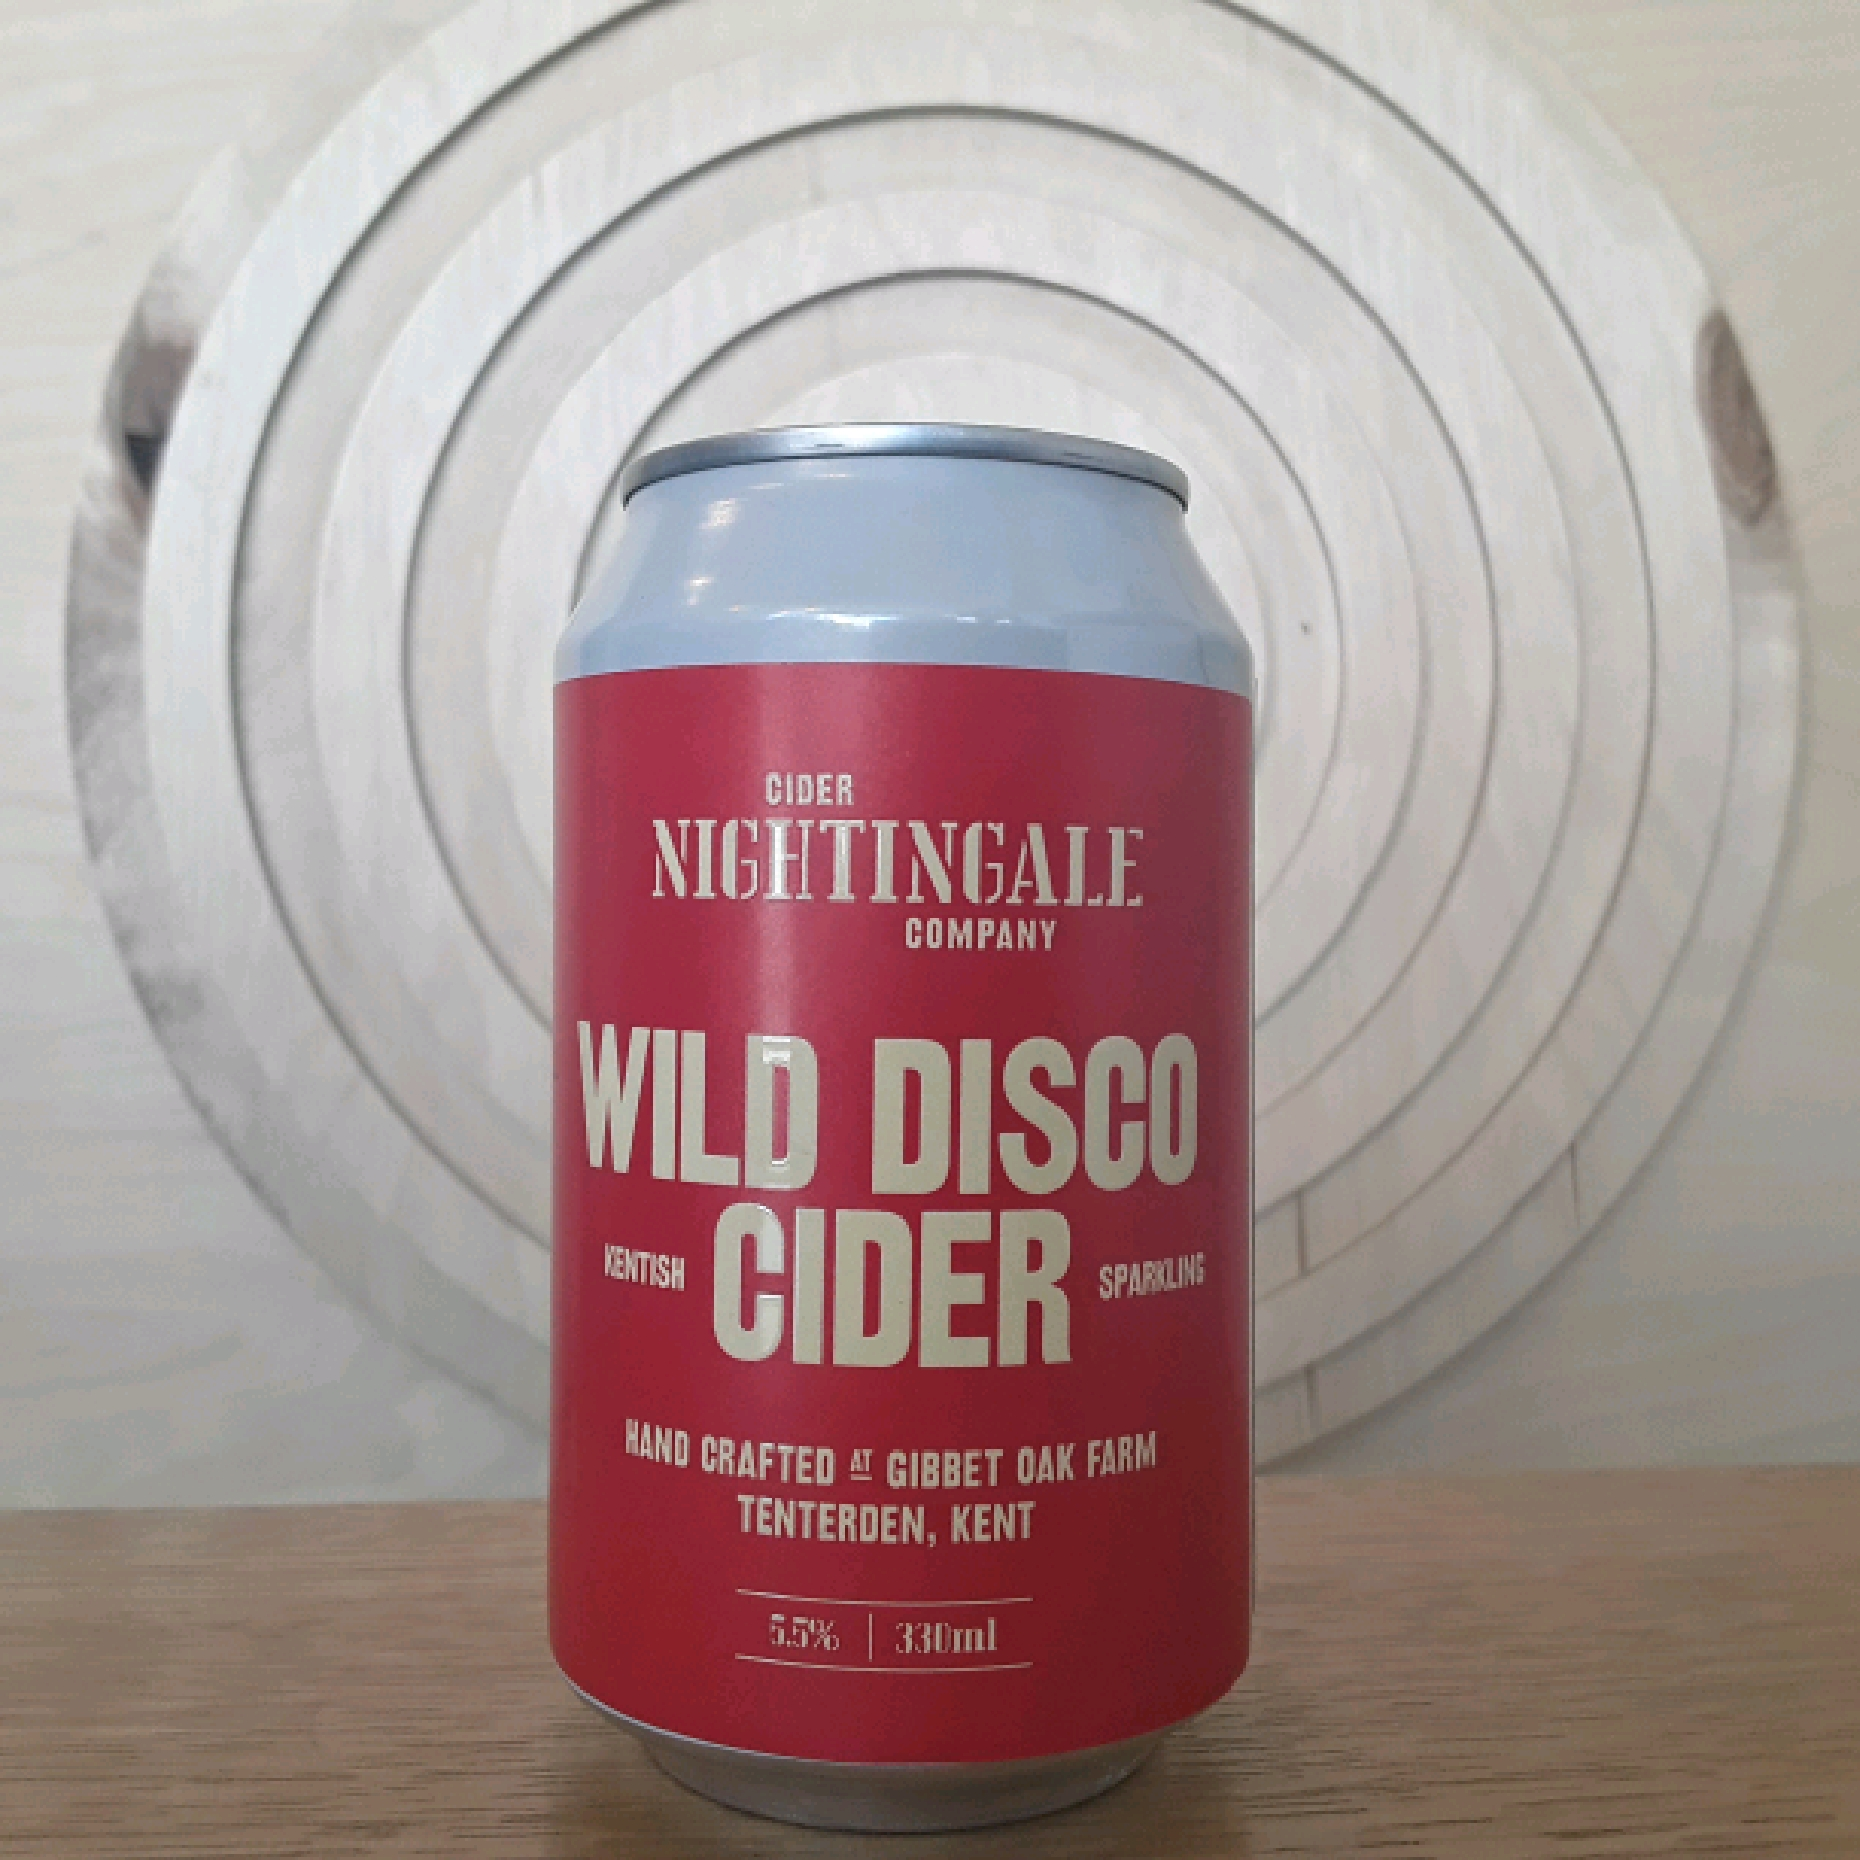 Nightingale Cider Wild Disco